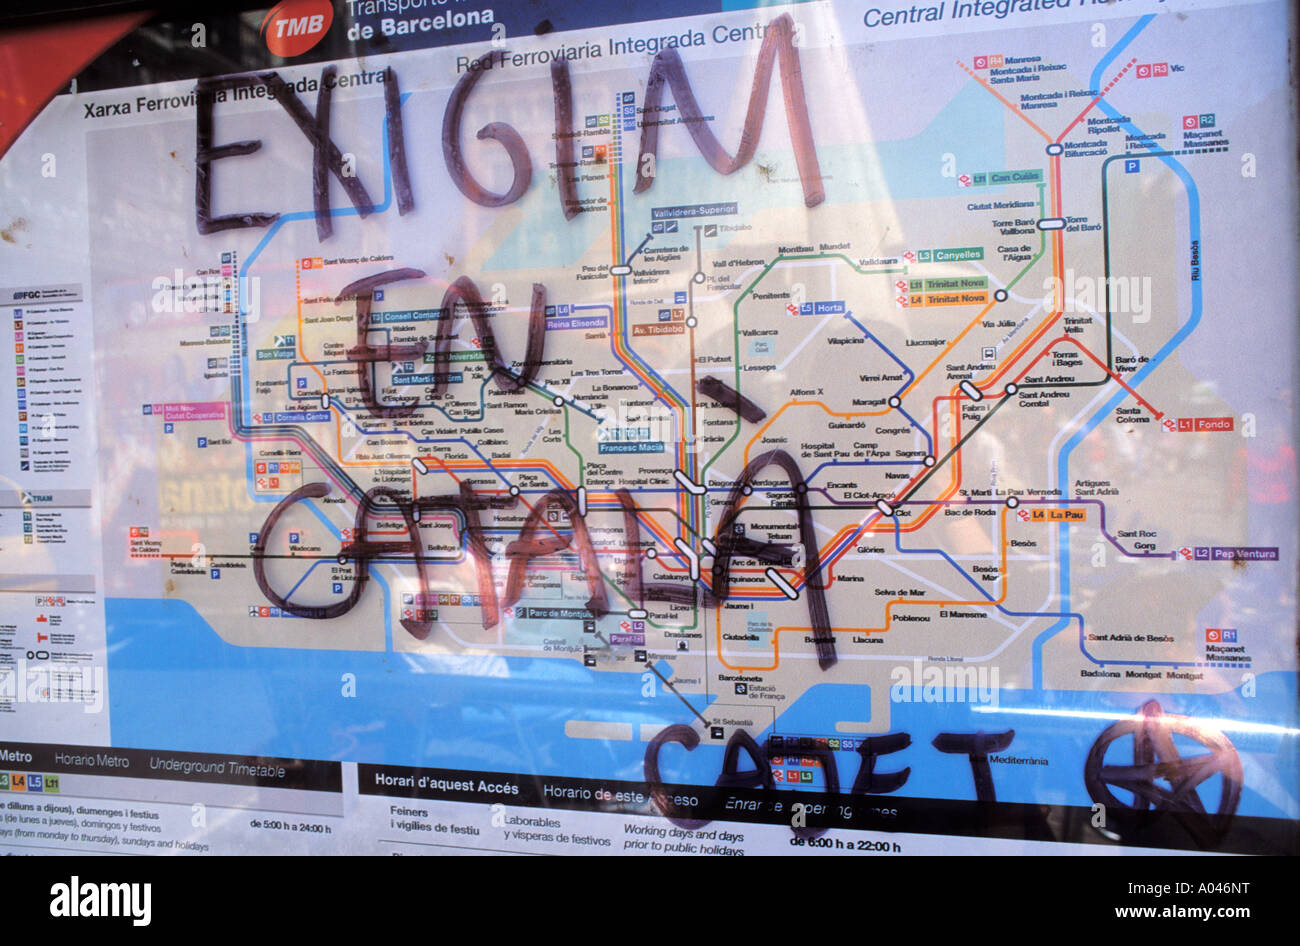 Subway Map Of Barcelona Spain.Barcelona Subway Map Stock Photos Barcelona Subway Map Stock